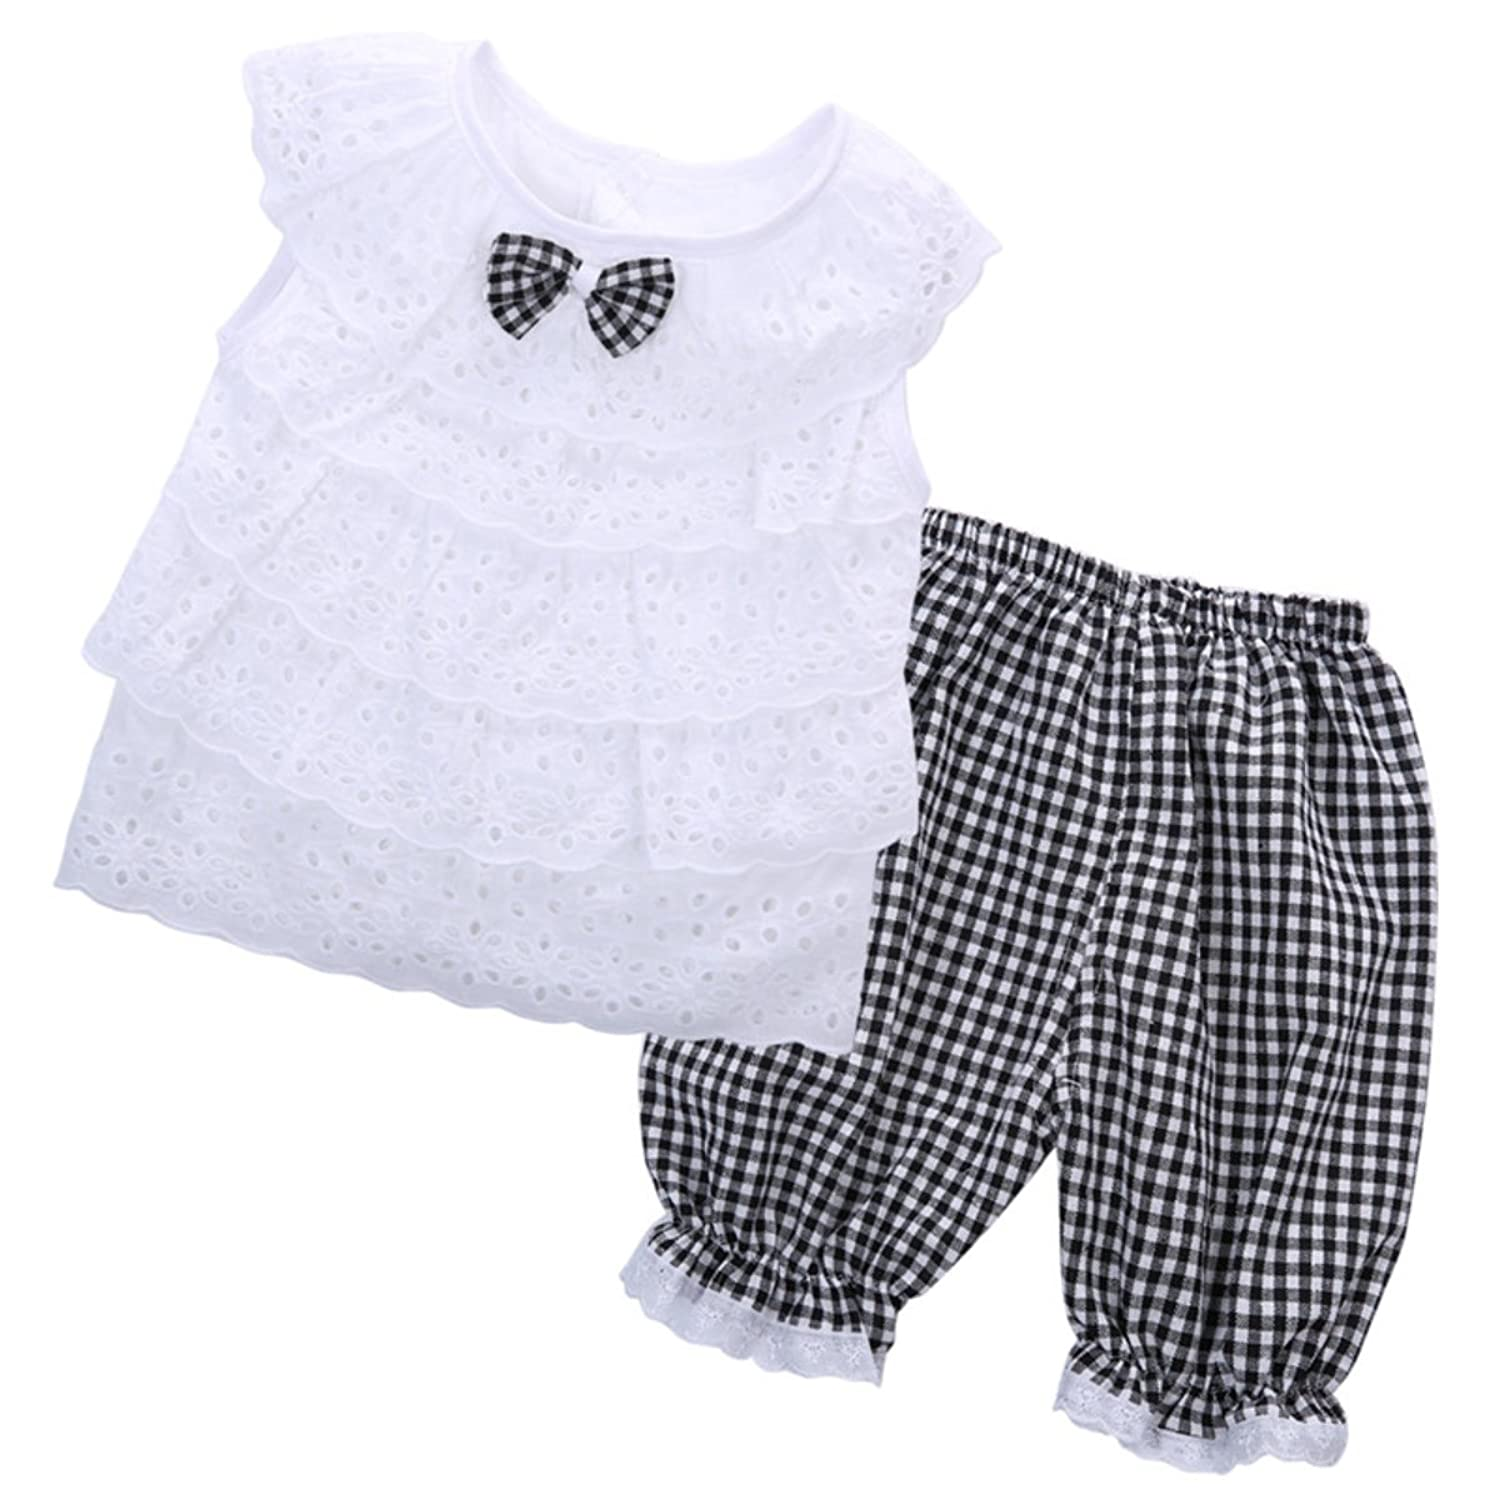 7e0d26824a4d Siddiva White Lace Top & Checks Short Pant (Two Piece Set for Girls – 2